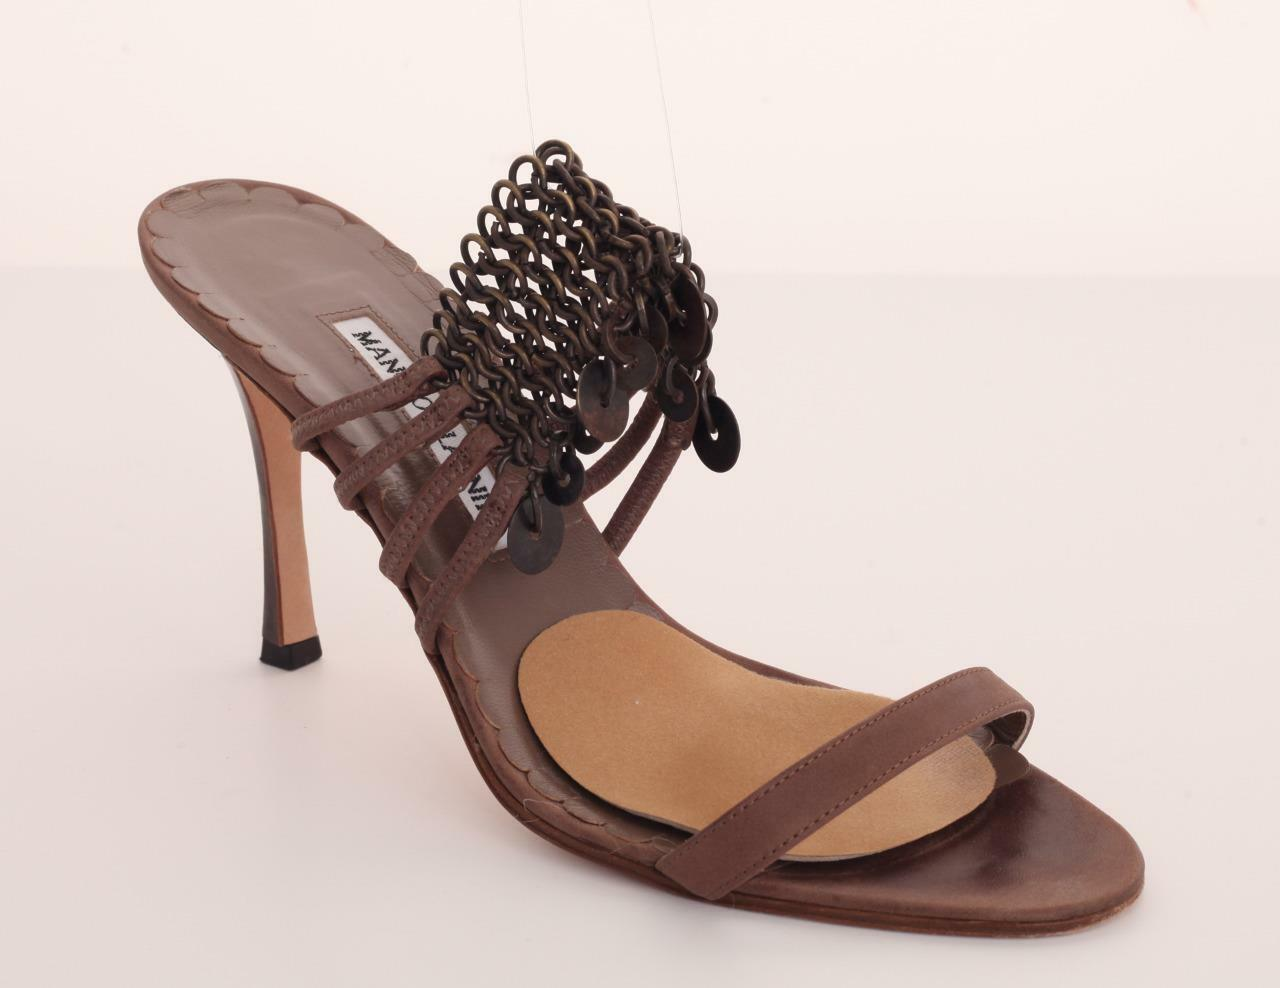 MANOLO BLAHNIK Taupe Leather High Heel Open-Toe Chain Sandal Pump shoes 10-40